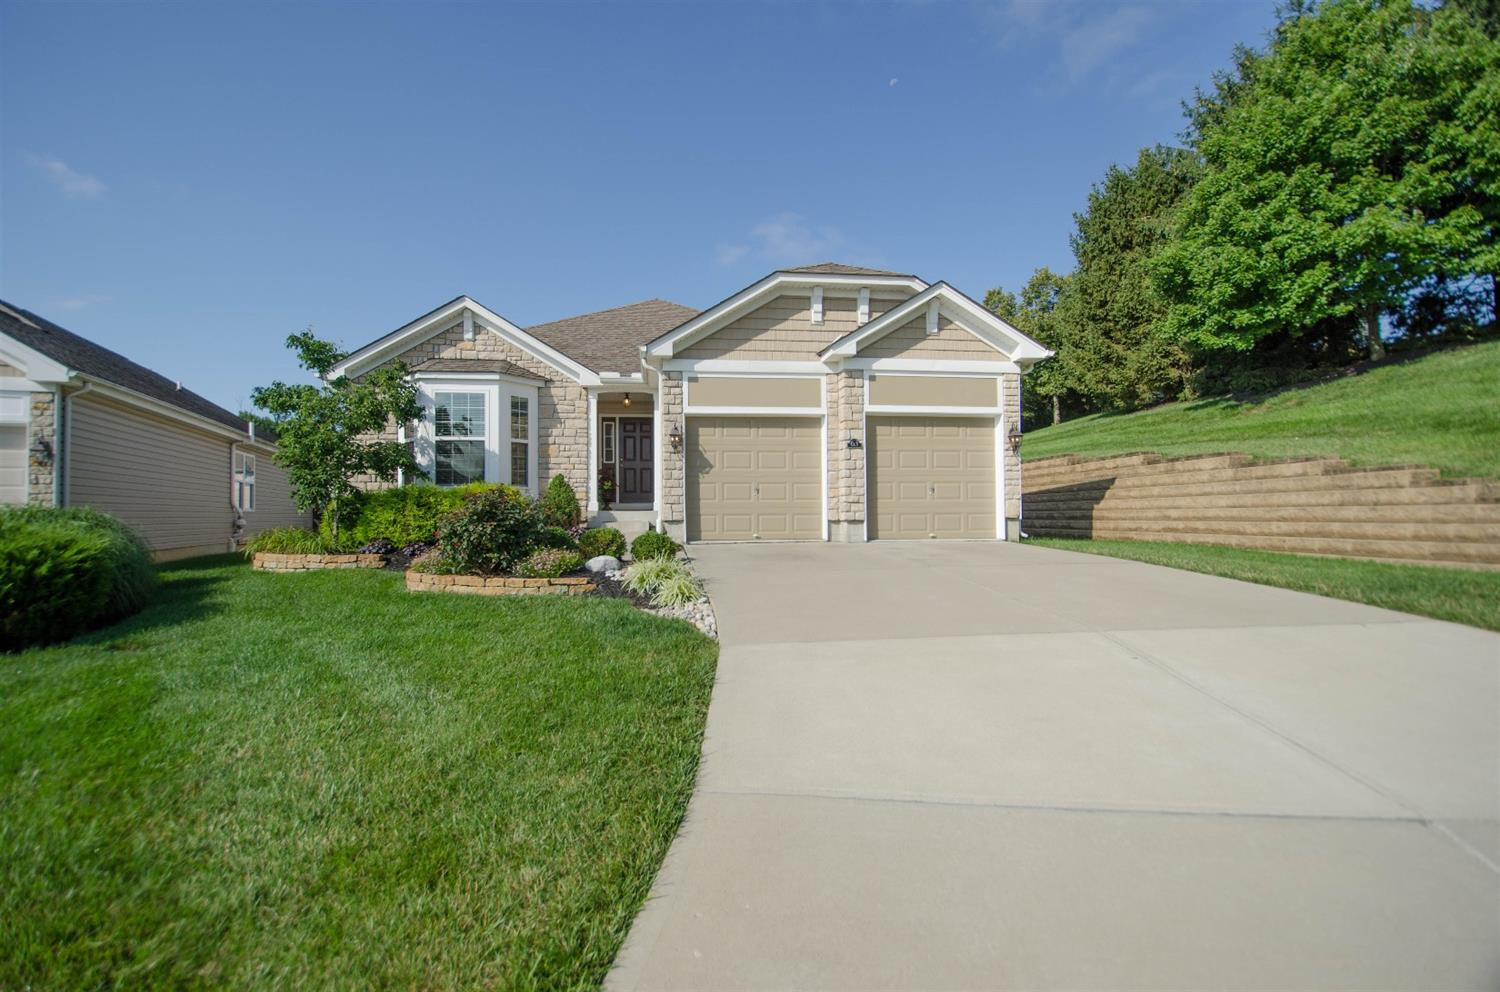 63 Bedles Court, South Lebanon, OH 45065